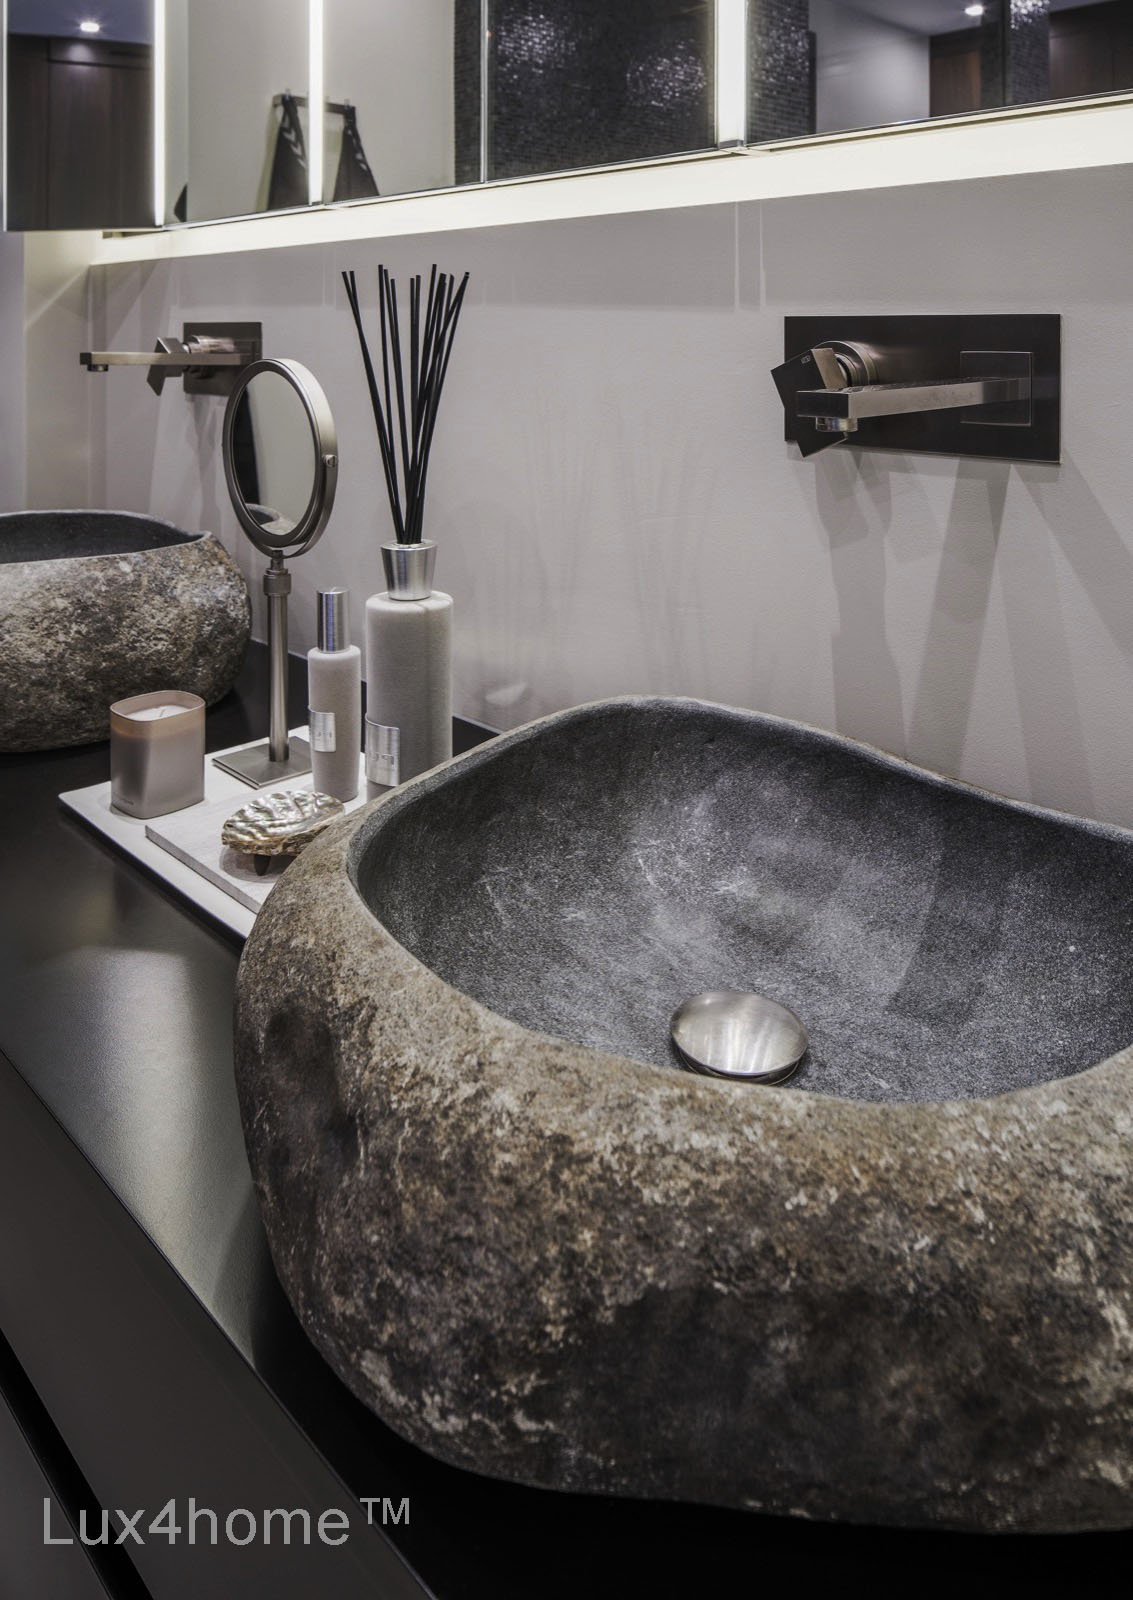 Lavabo Batu Kali Natural River Stone Sinks Welcome To